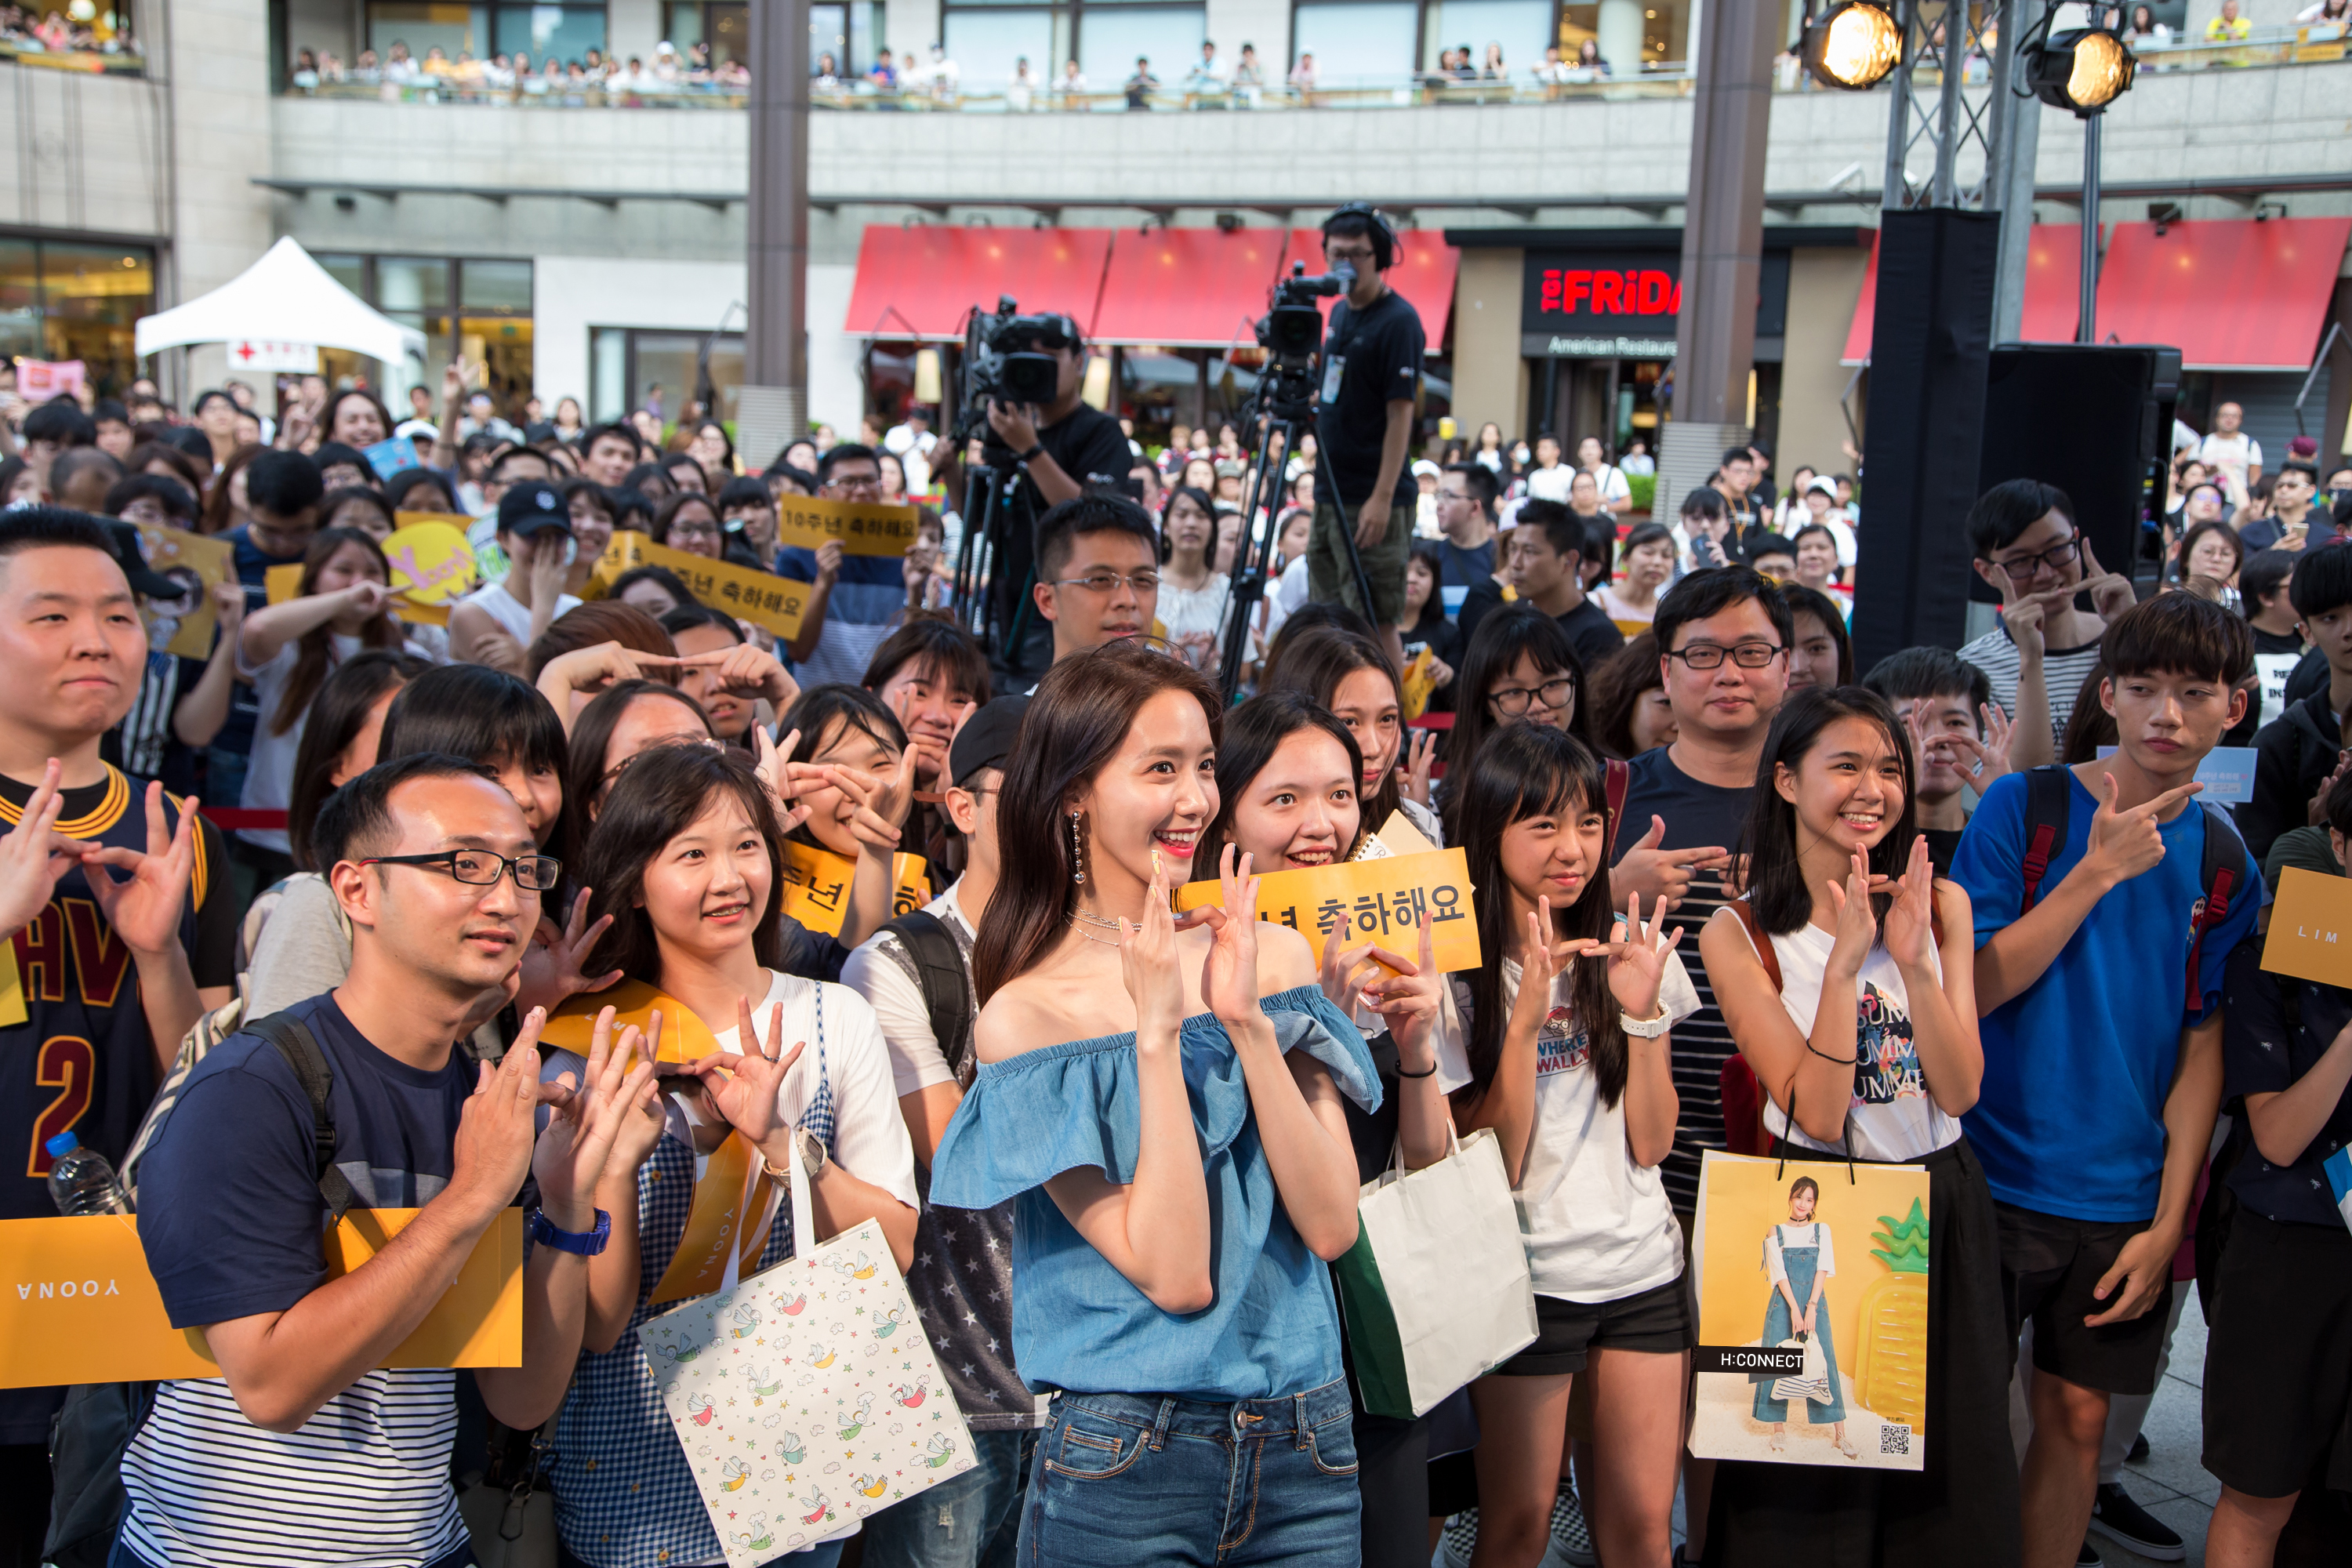 Kpop star Yoona Lim at a fan meet-and-greet for fashion brand HConnect in Taiwan.